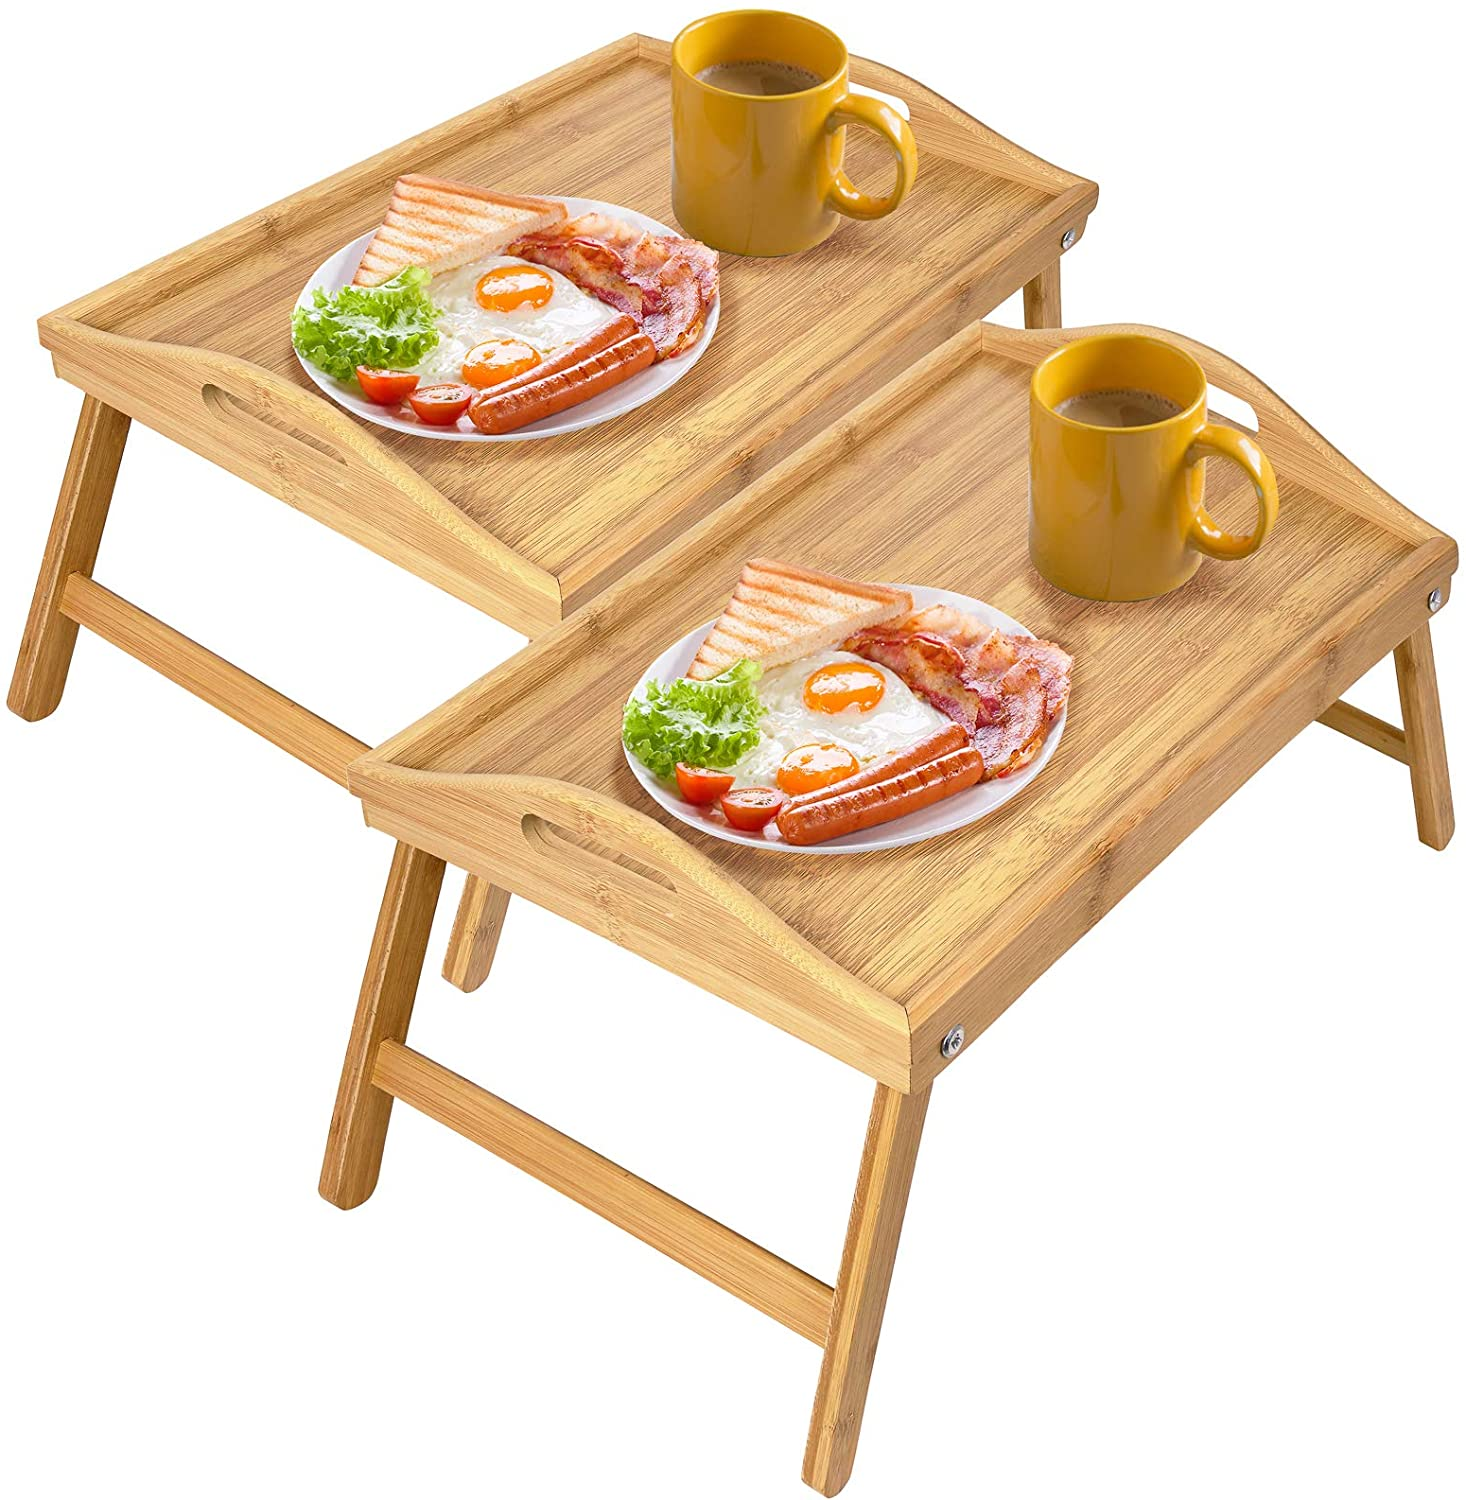 Greenco Bamboo Foldable Breakfast Laptop Servi Large discharge sale Bed Table Desk Year-end gift